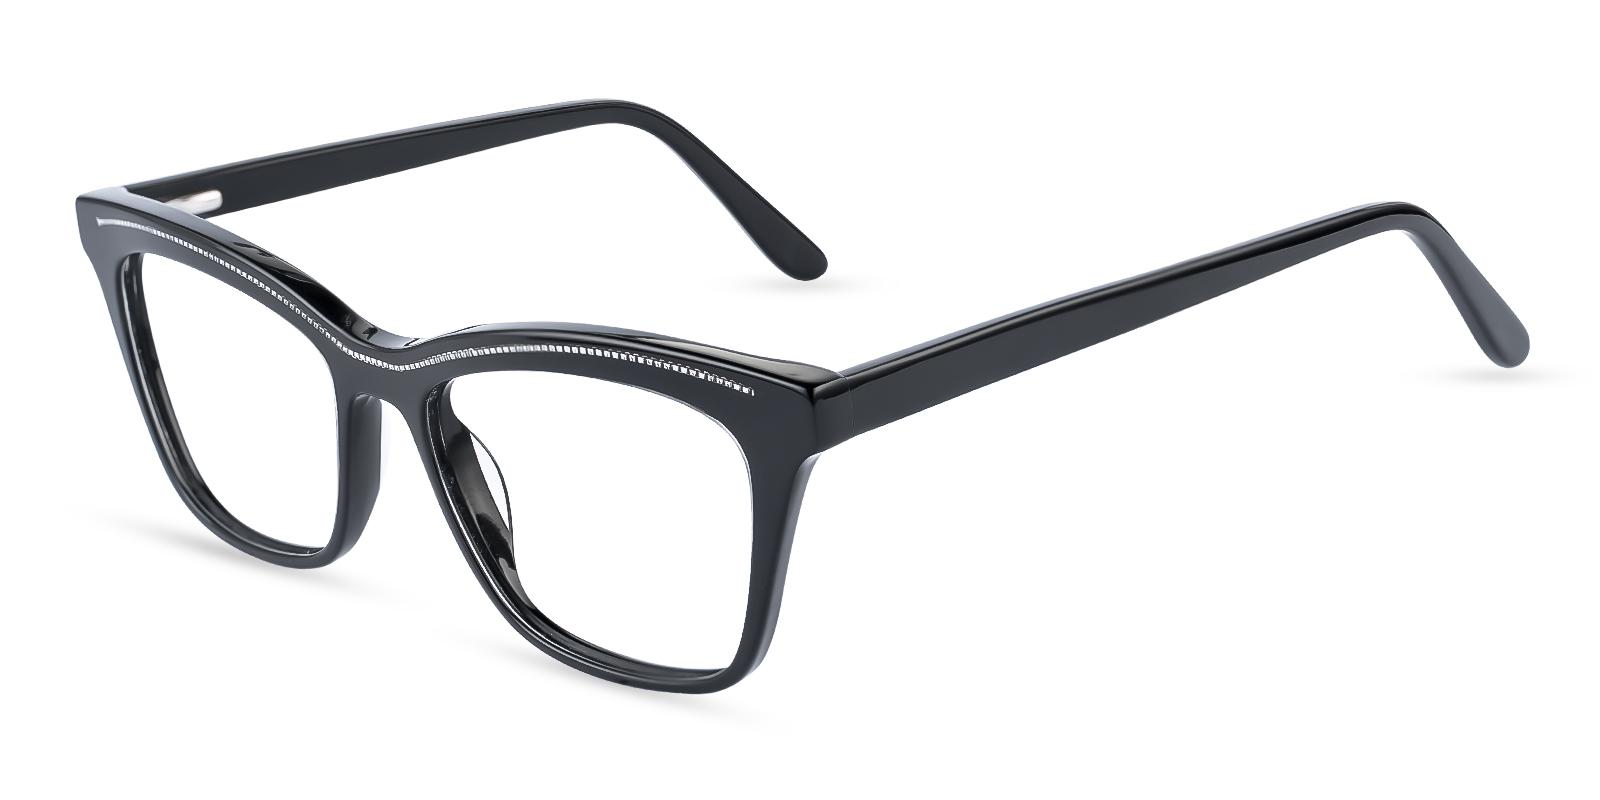 Kate Black Acetate Eyeglasses , Fashion , SpringHinges , UniversalBridgeFit Frames from ABBE Glasses